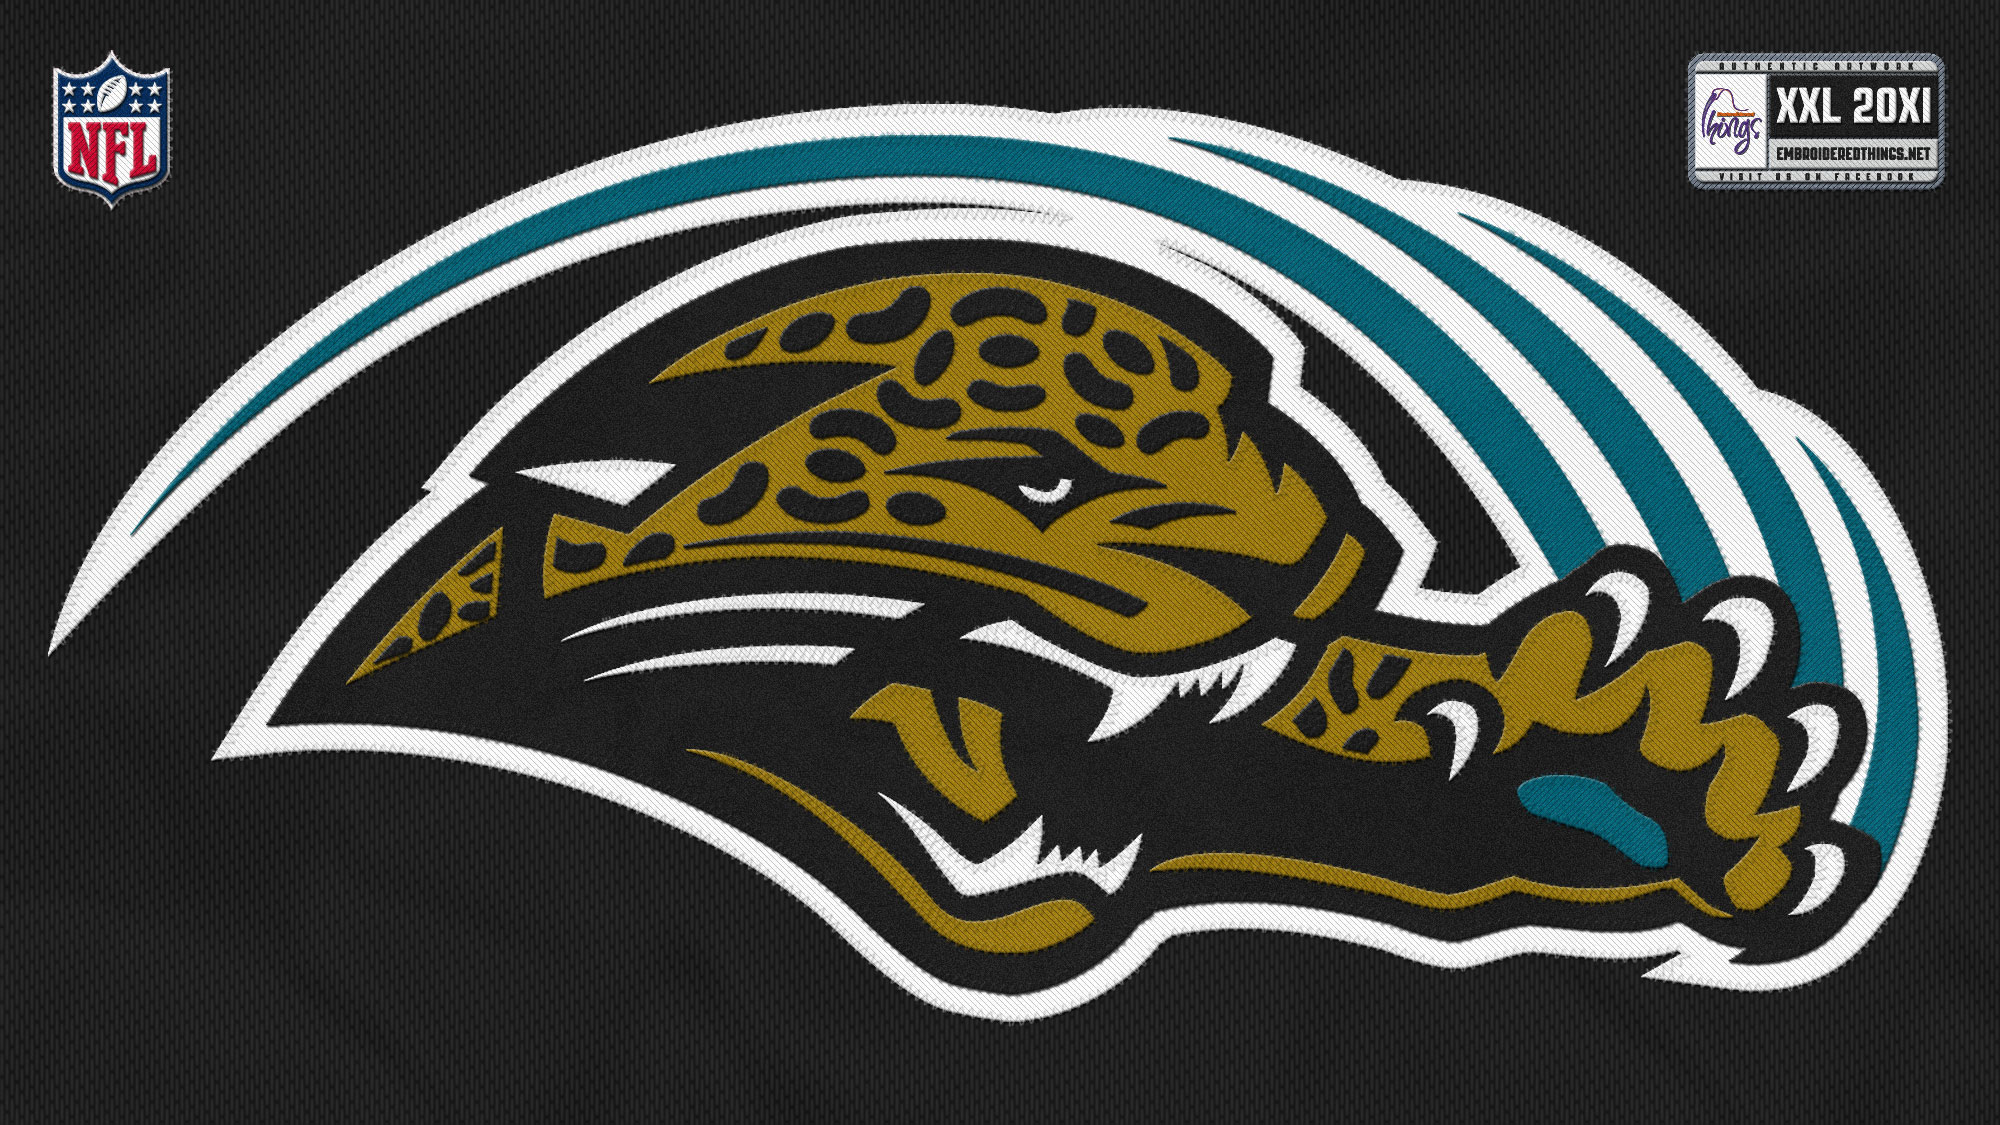 JACKSONVILLE JAGUARS nfl football f wallpaper background 2000x1125